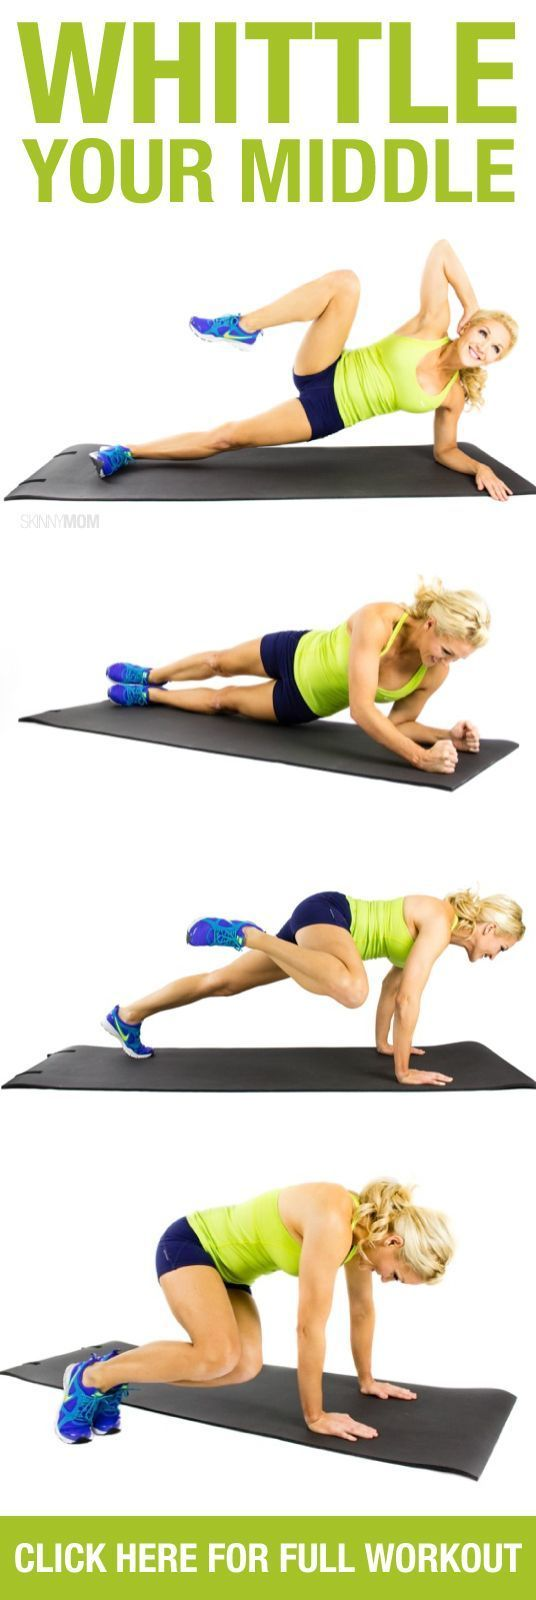 Shrink your waist with these ab exercises!